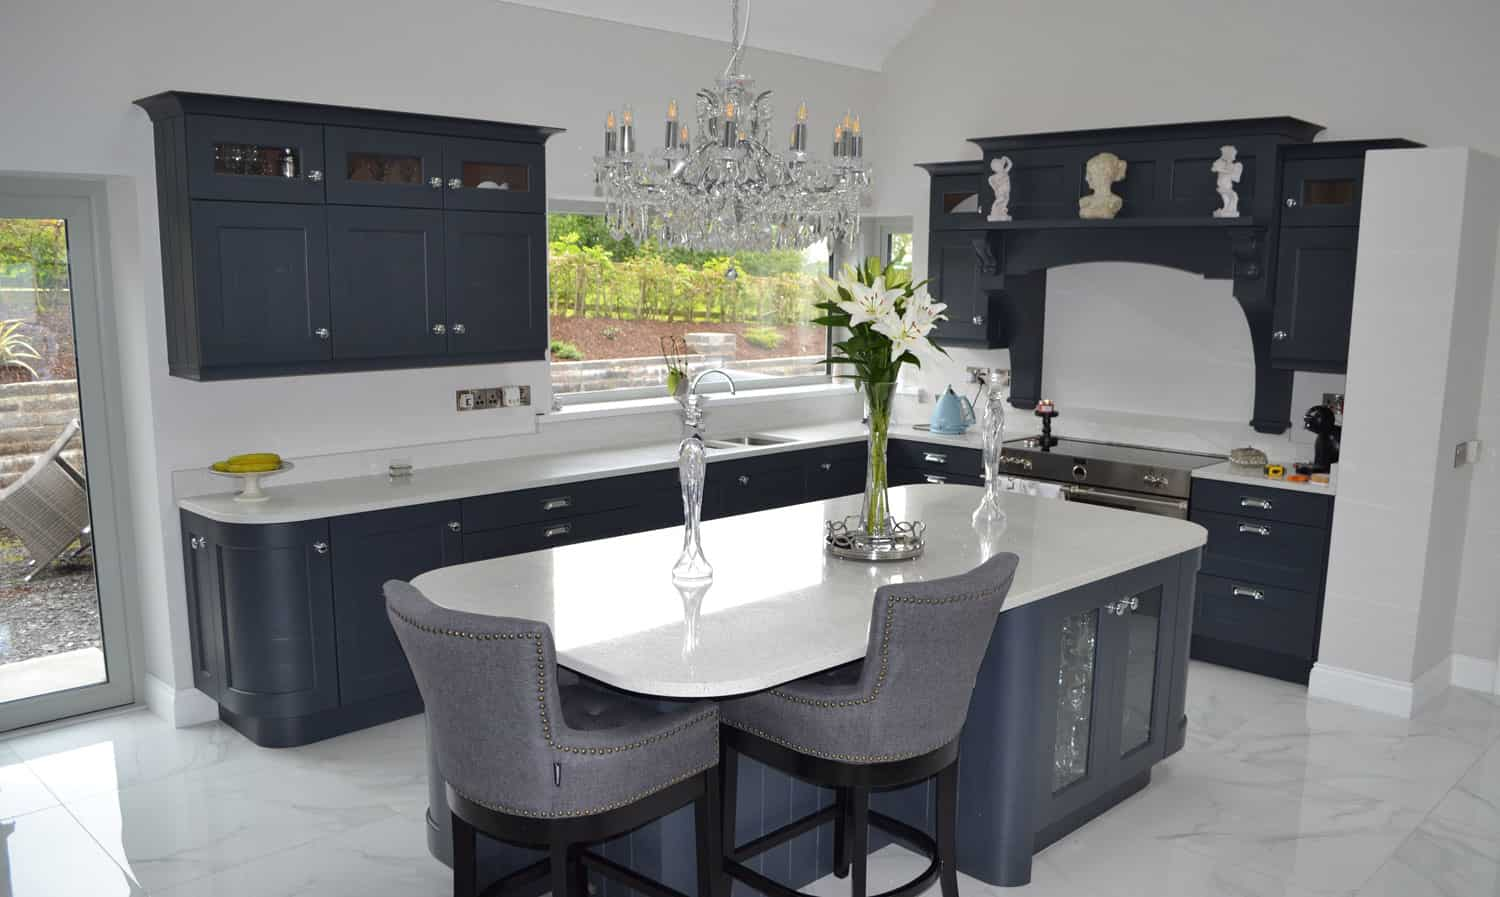 Fleming Dwelling - Traditional Styled Kitchen By Dunlops